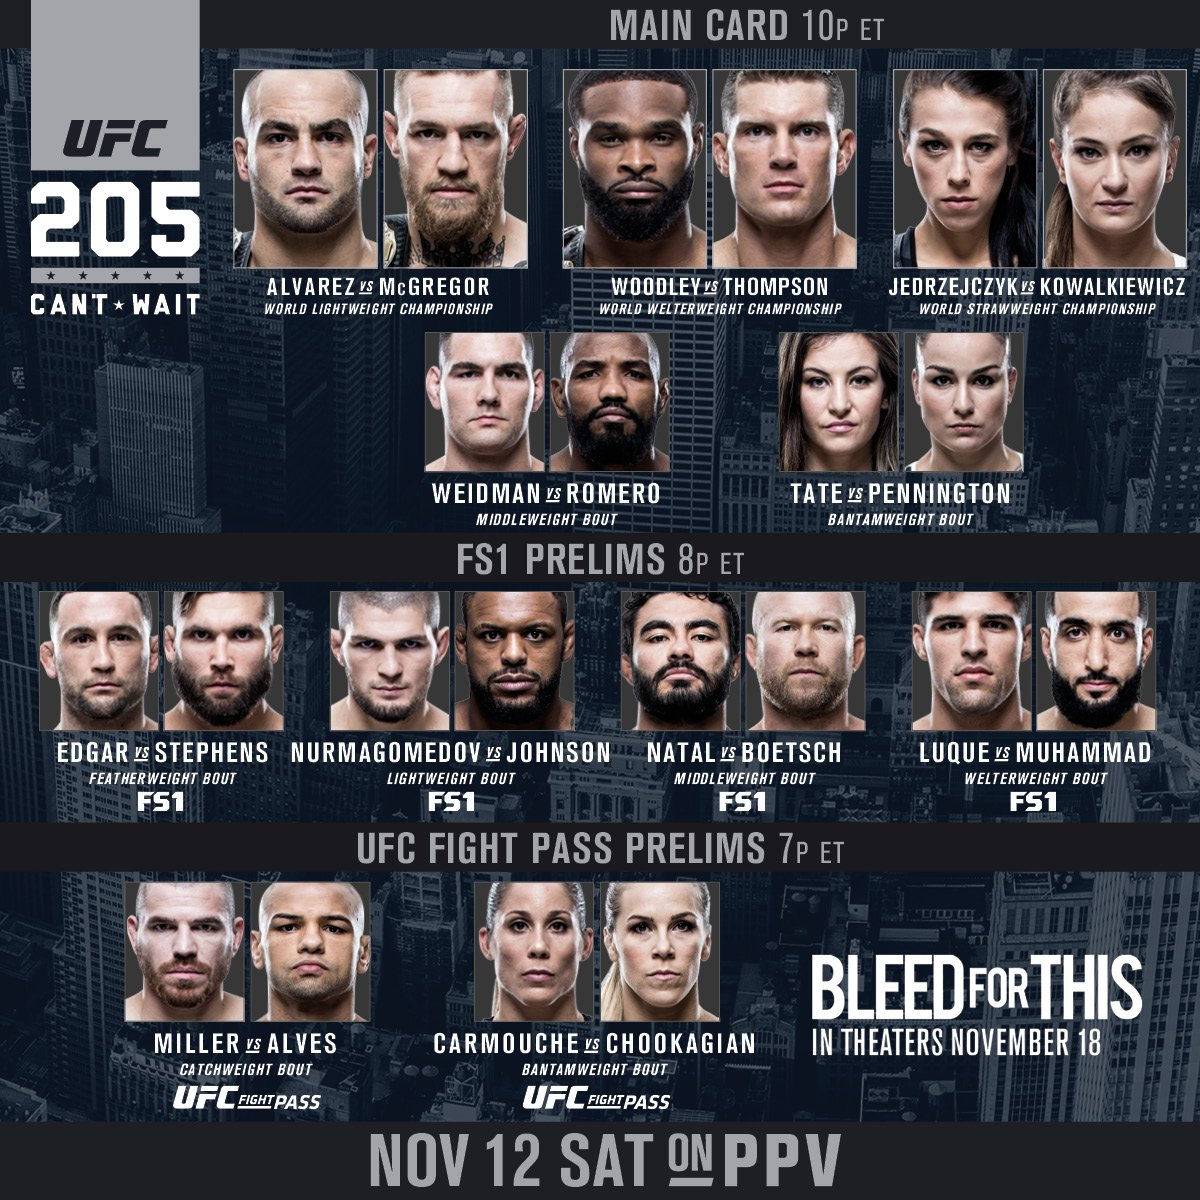 Ufc On Twitter It S Fight Day Ufc205 Goes Down Tonight Fight Card Btyb Bleedforthis In Theaters 11 18 Ufcnyc